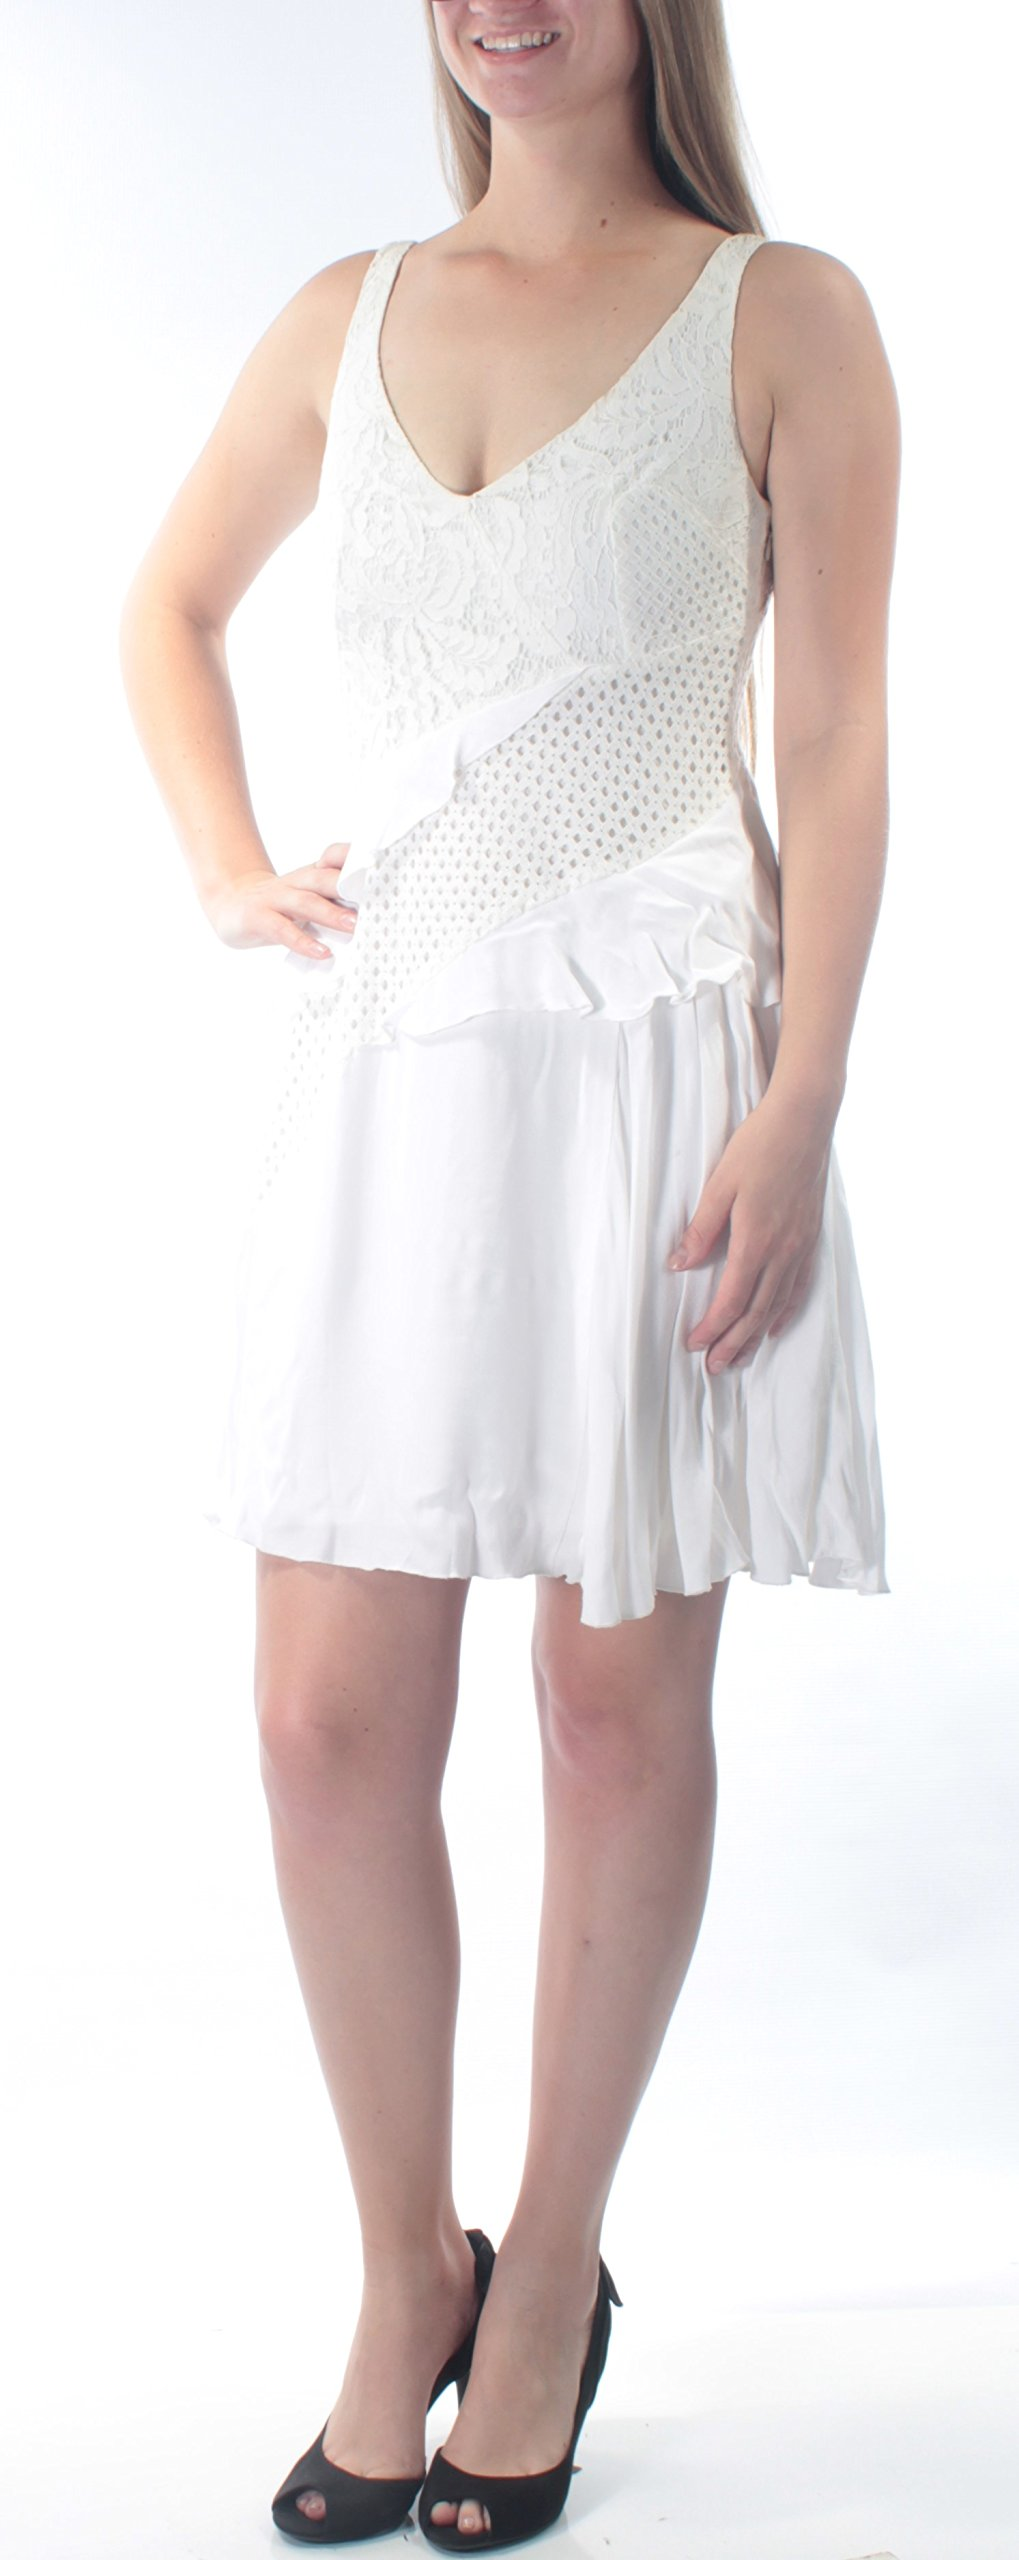 French Connection Women's Ripple Lace Dress, Summer White, 6